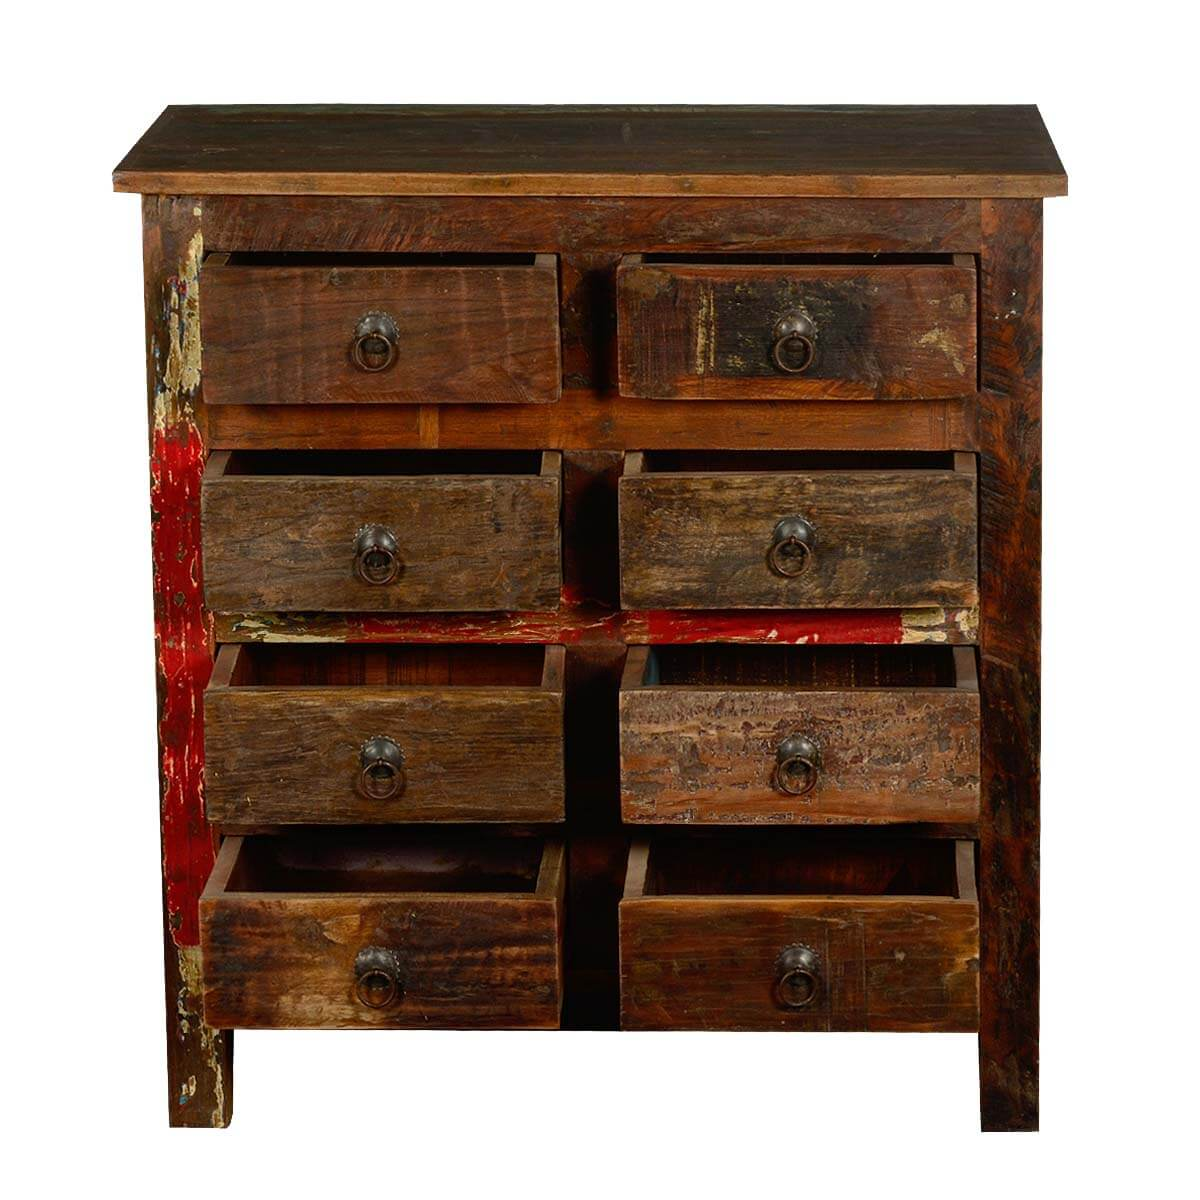 Rustic 8 Rustic 8: Rustic Reclaimed Wood 8 Drawer Double Dresser Bedroom Chest